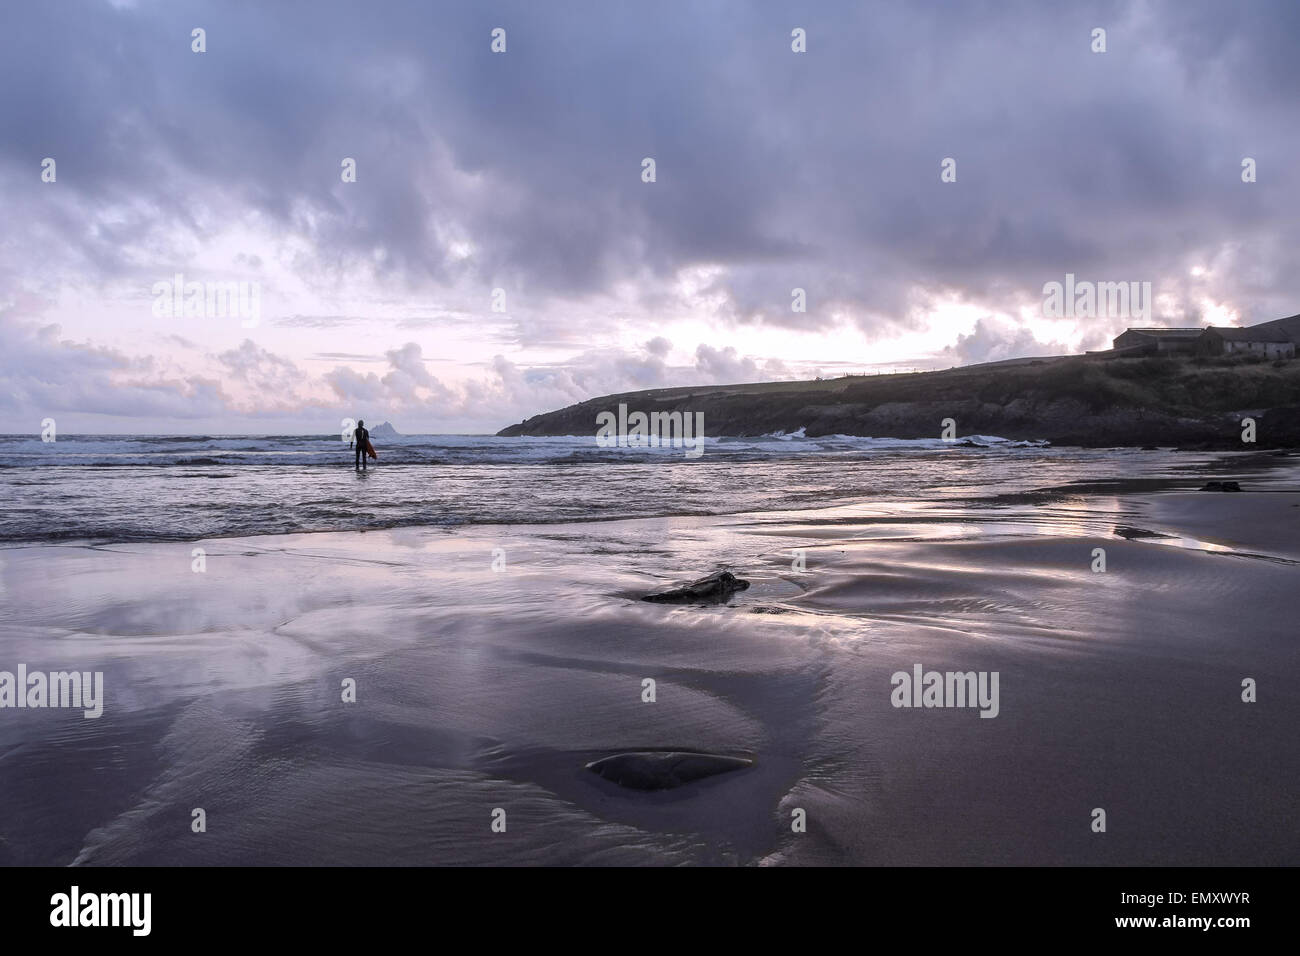 Beach with bad weather and dark clouds, County Kerry, Ireland - Stock Image